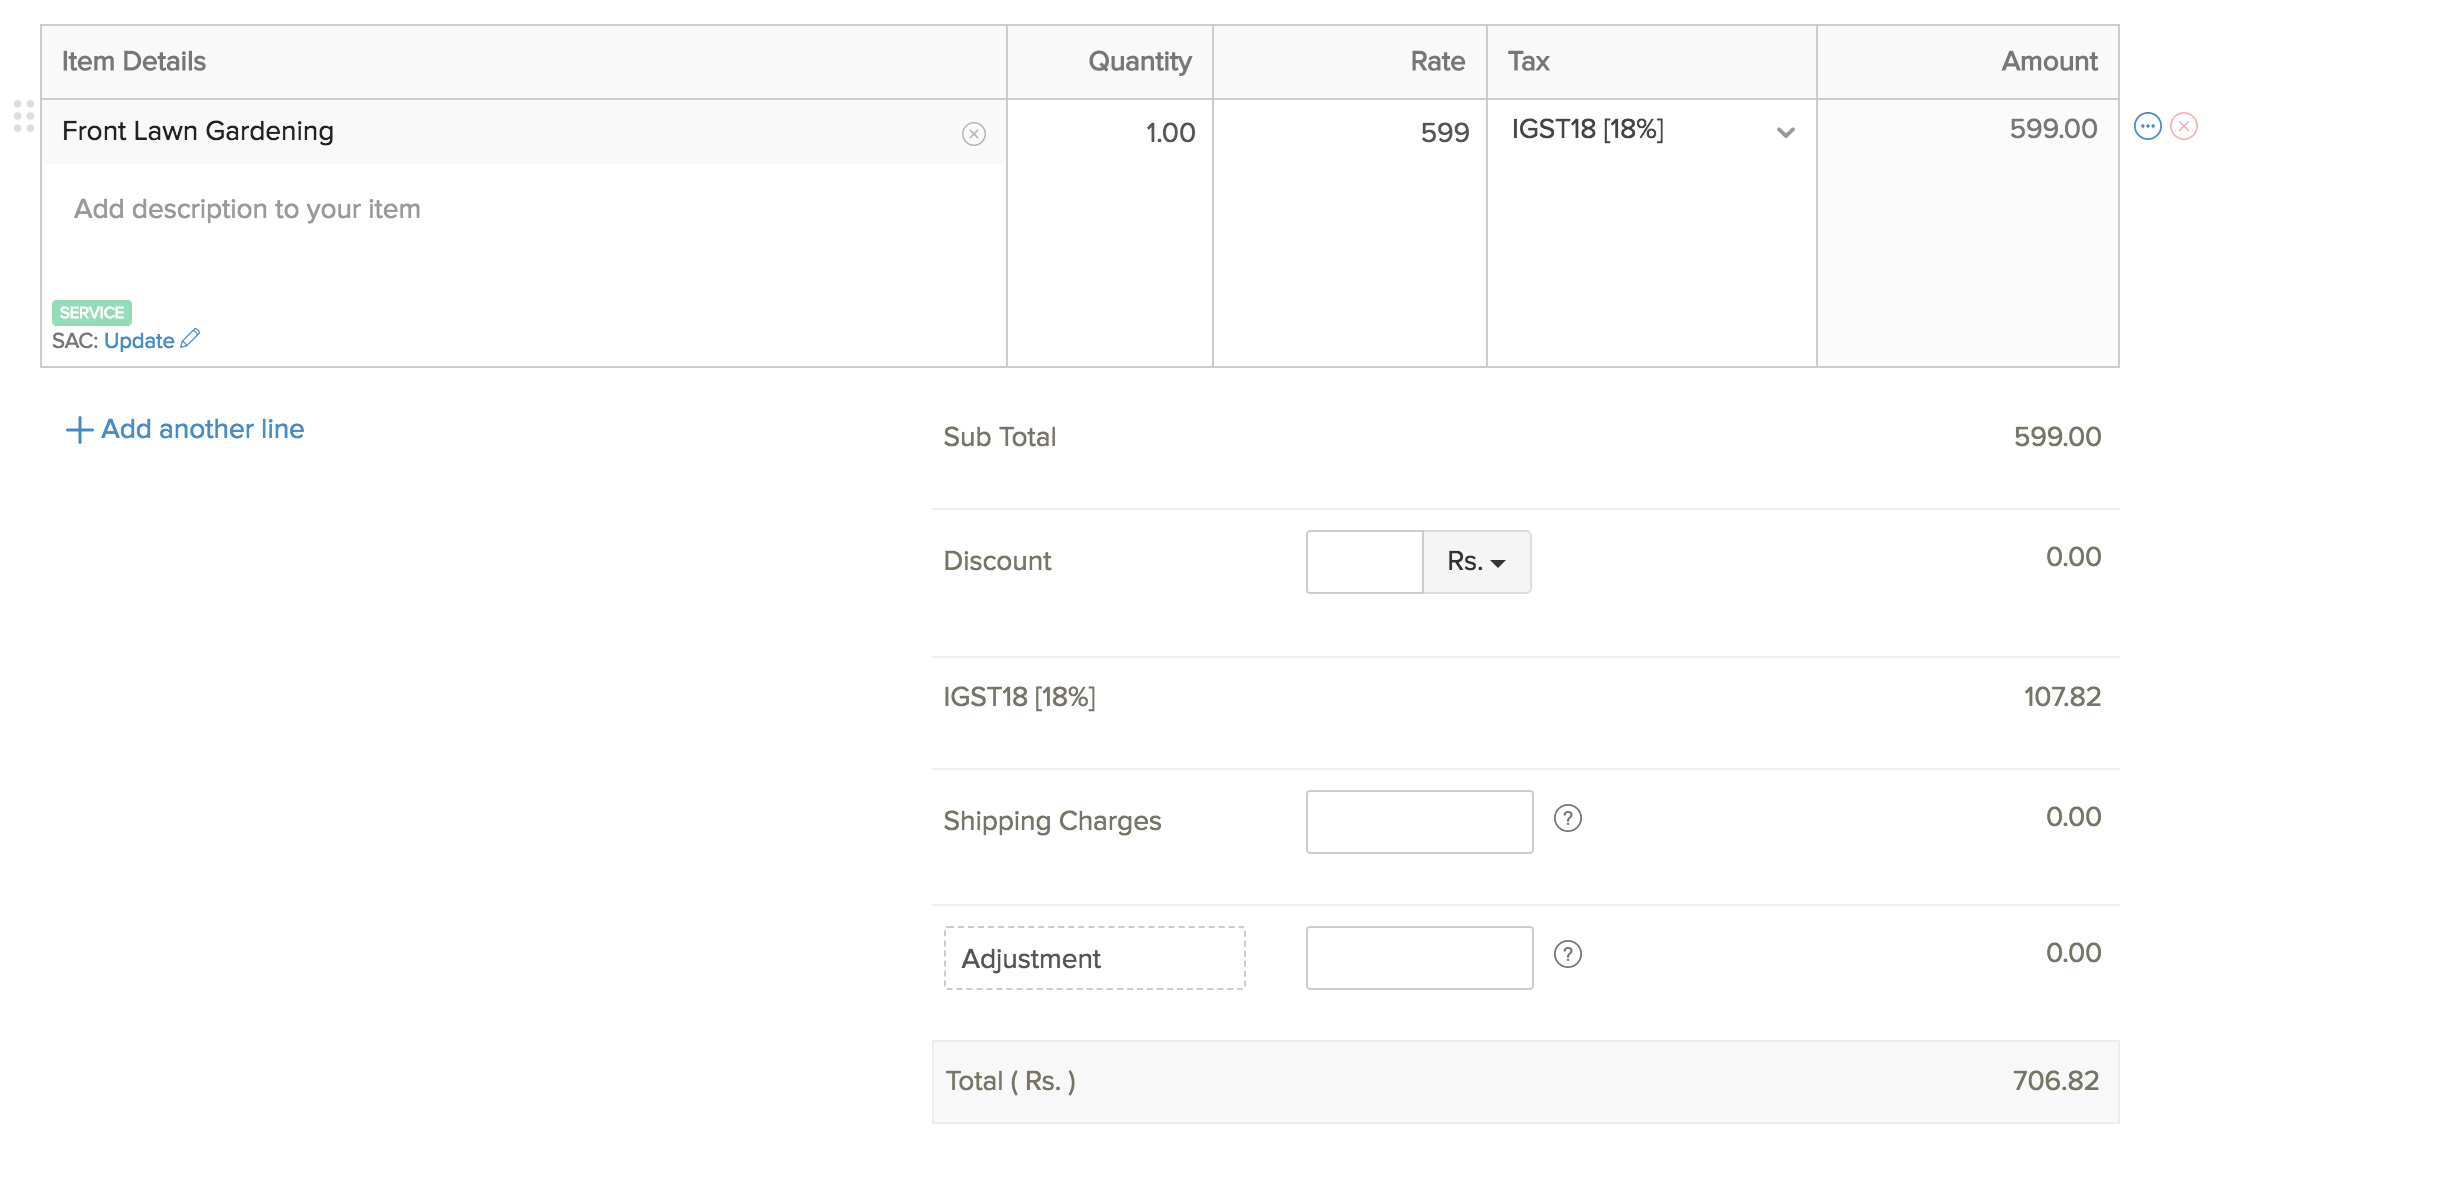 Creating a new invoice - part 2